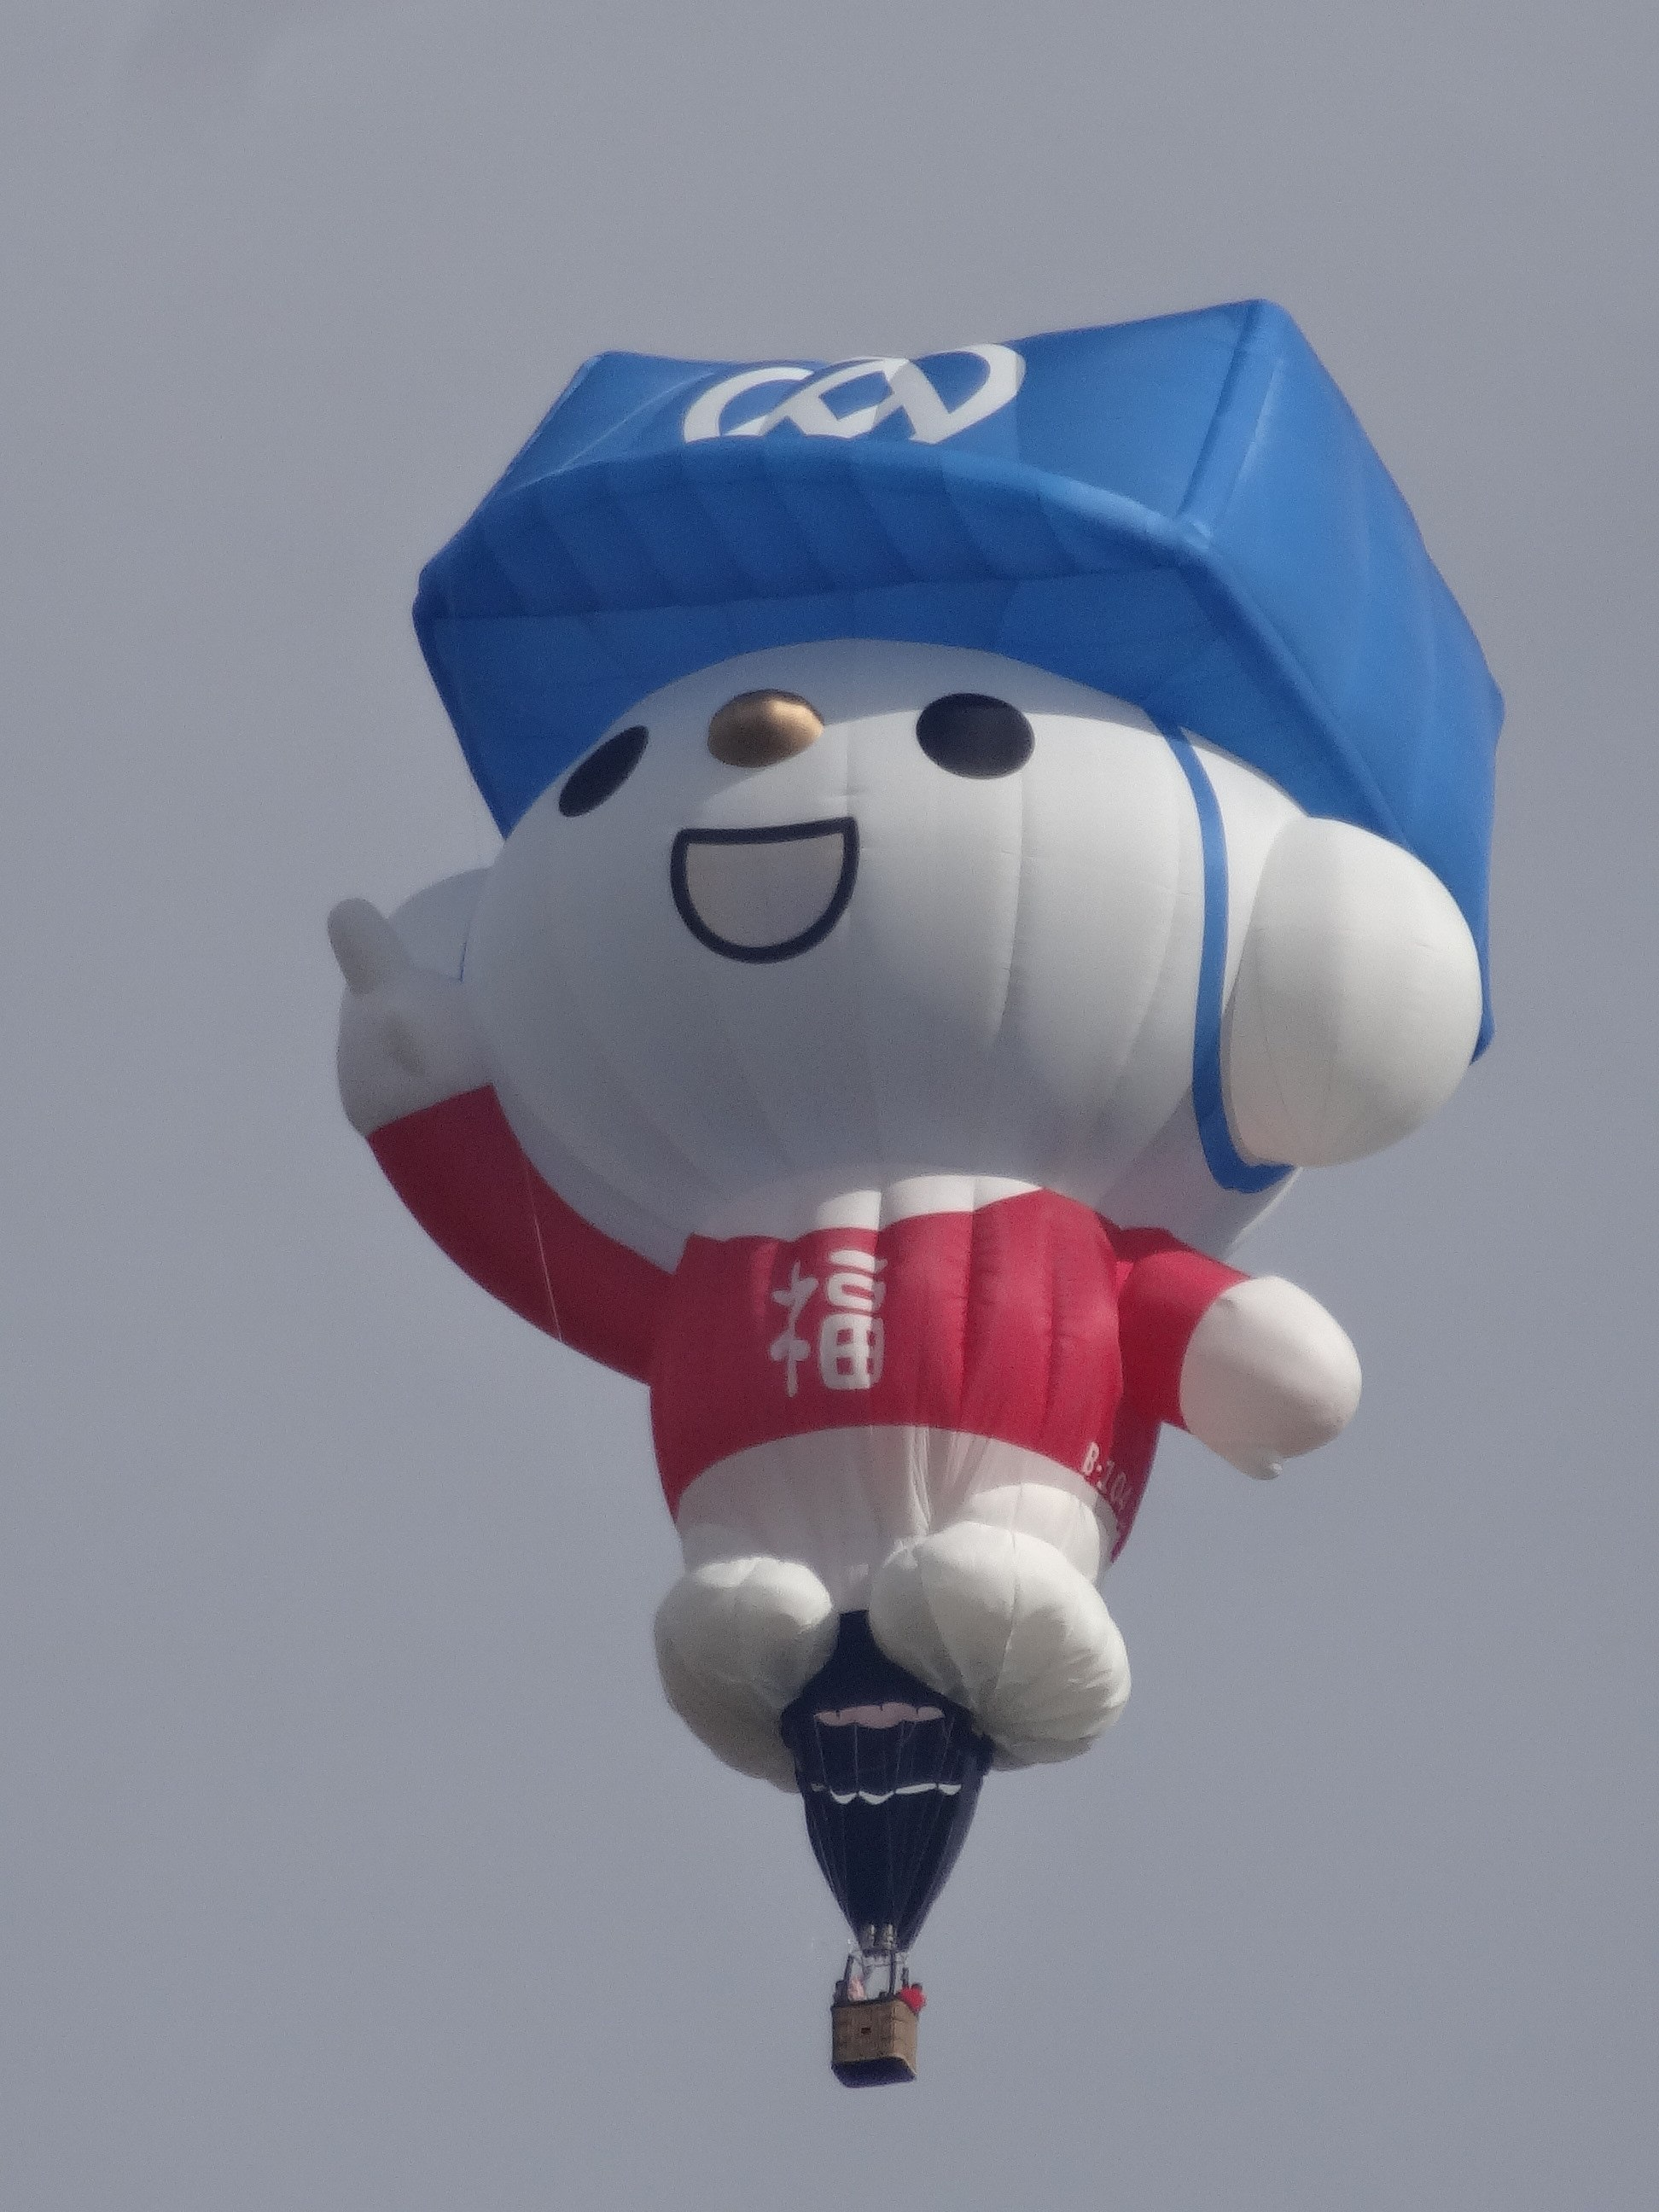 1a401df95212d File Chinese special shape hot air balloon manufactured by Ultramagic.jpg